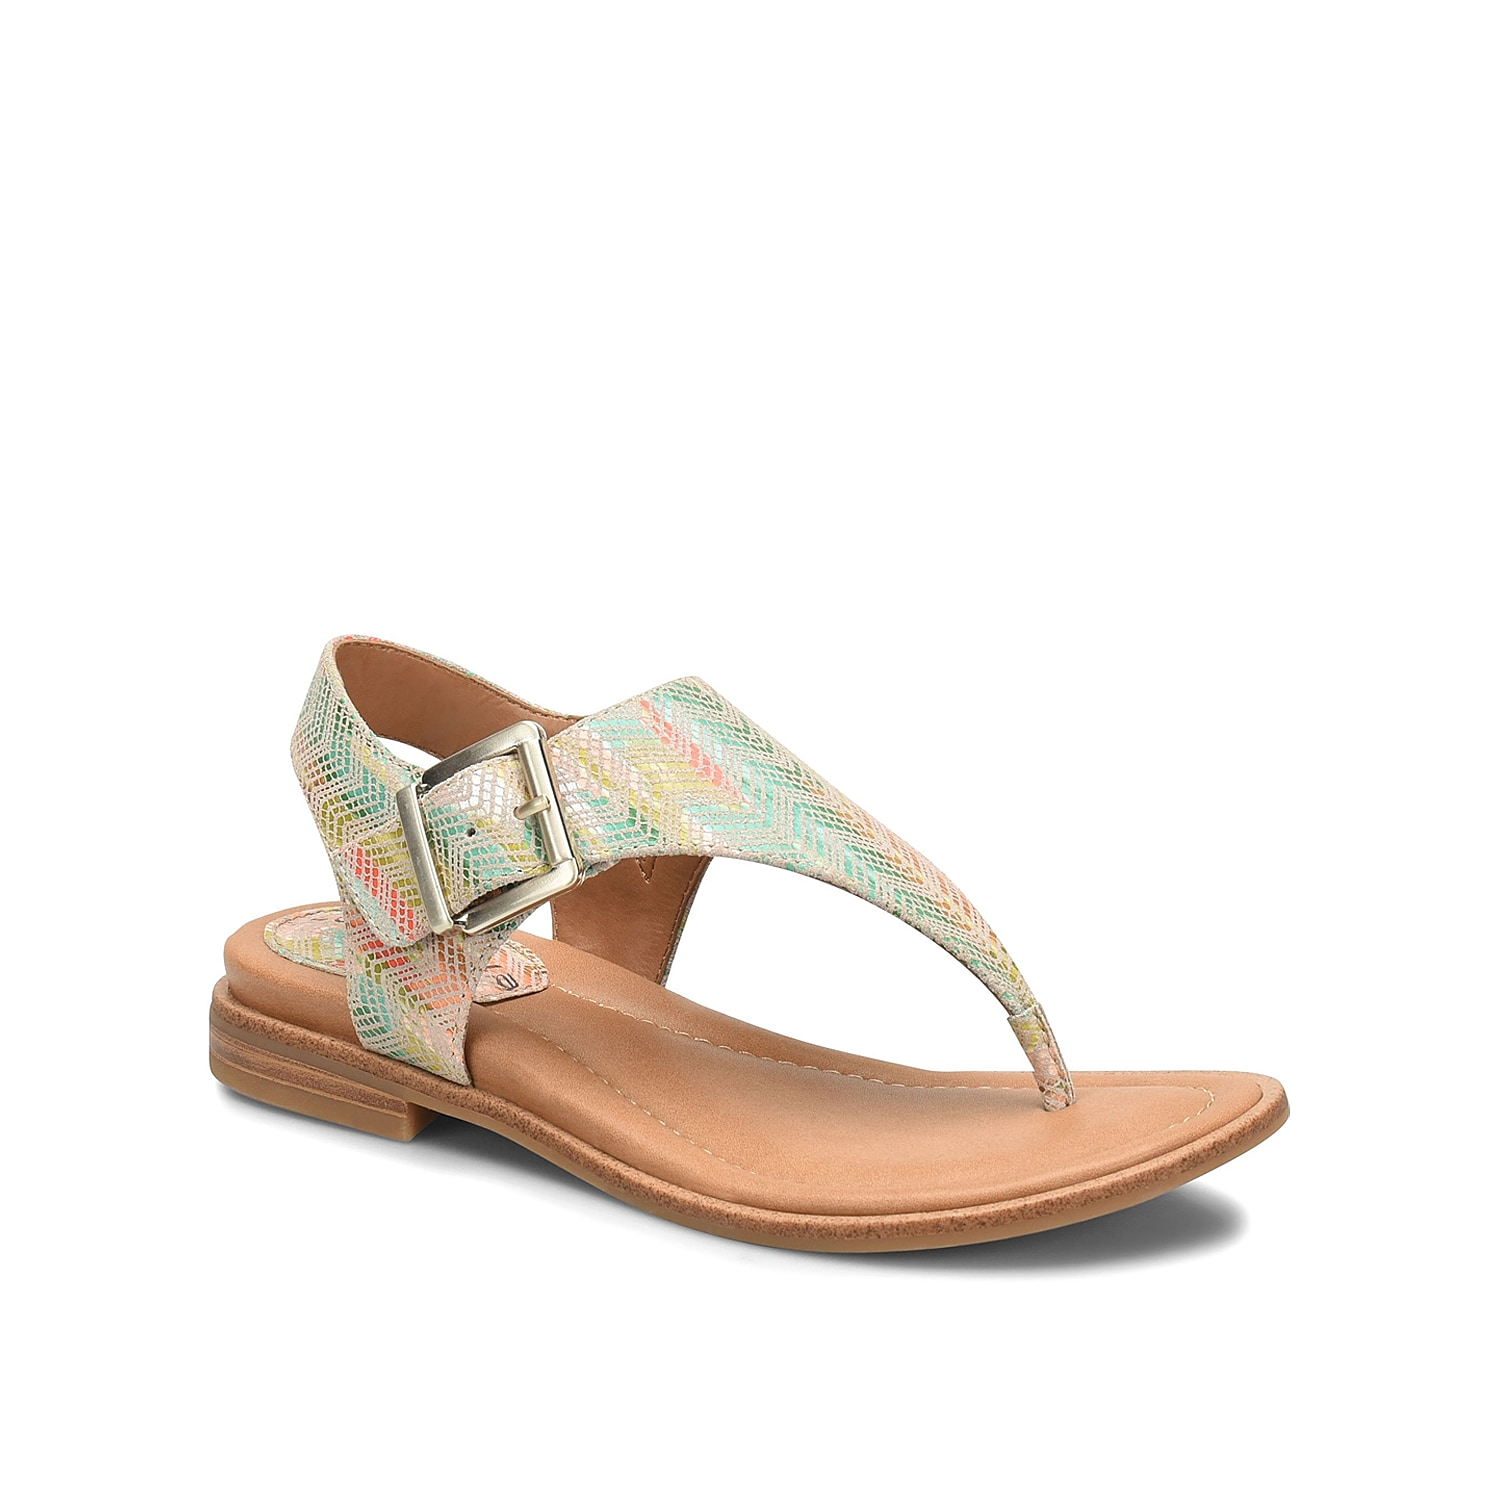 Spend your summer days wearing the Dafney sandal from Comfortiva. The leather vamp and Pillowtop® footbed will keep you on your feet hour after hour.